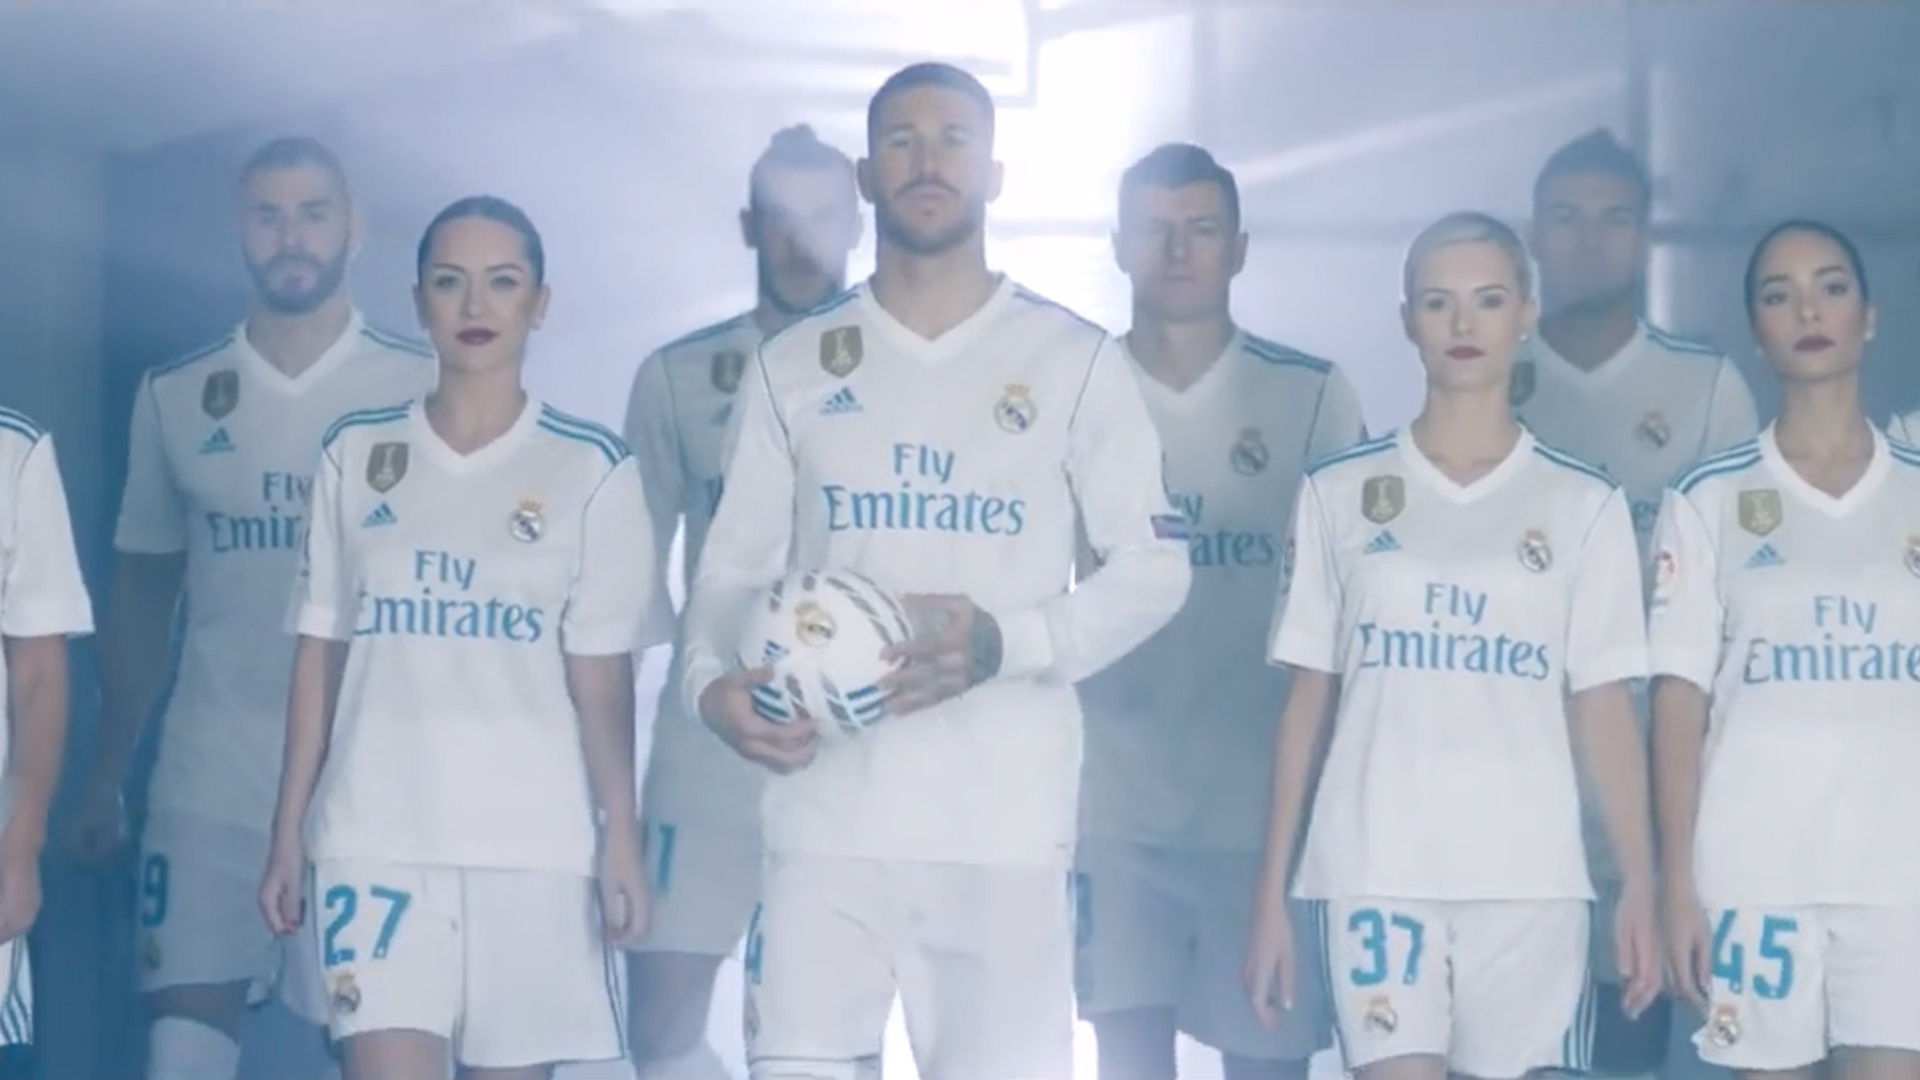 EMIRATES & REAL MADRID · ONE TEAM EMIRATES AIRLINE